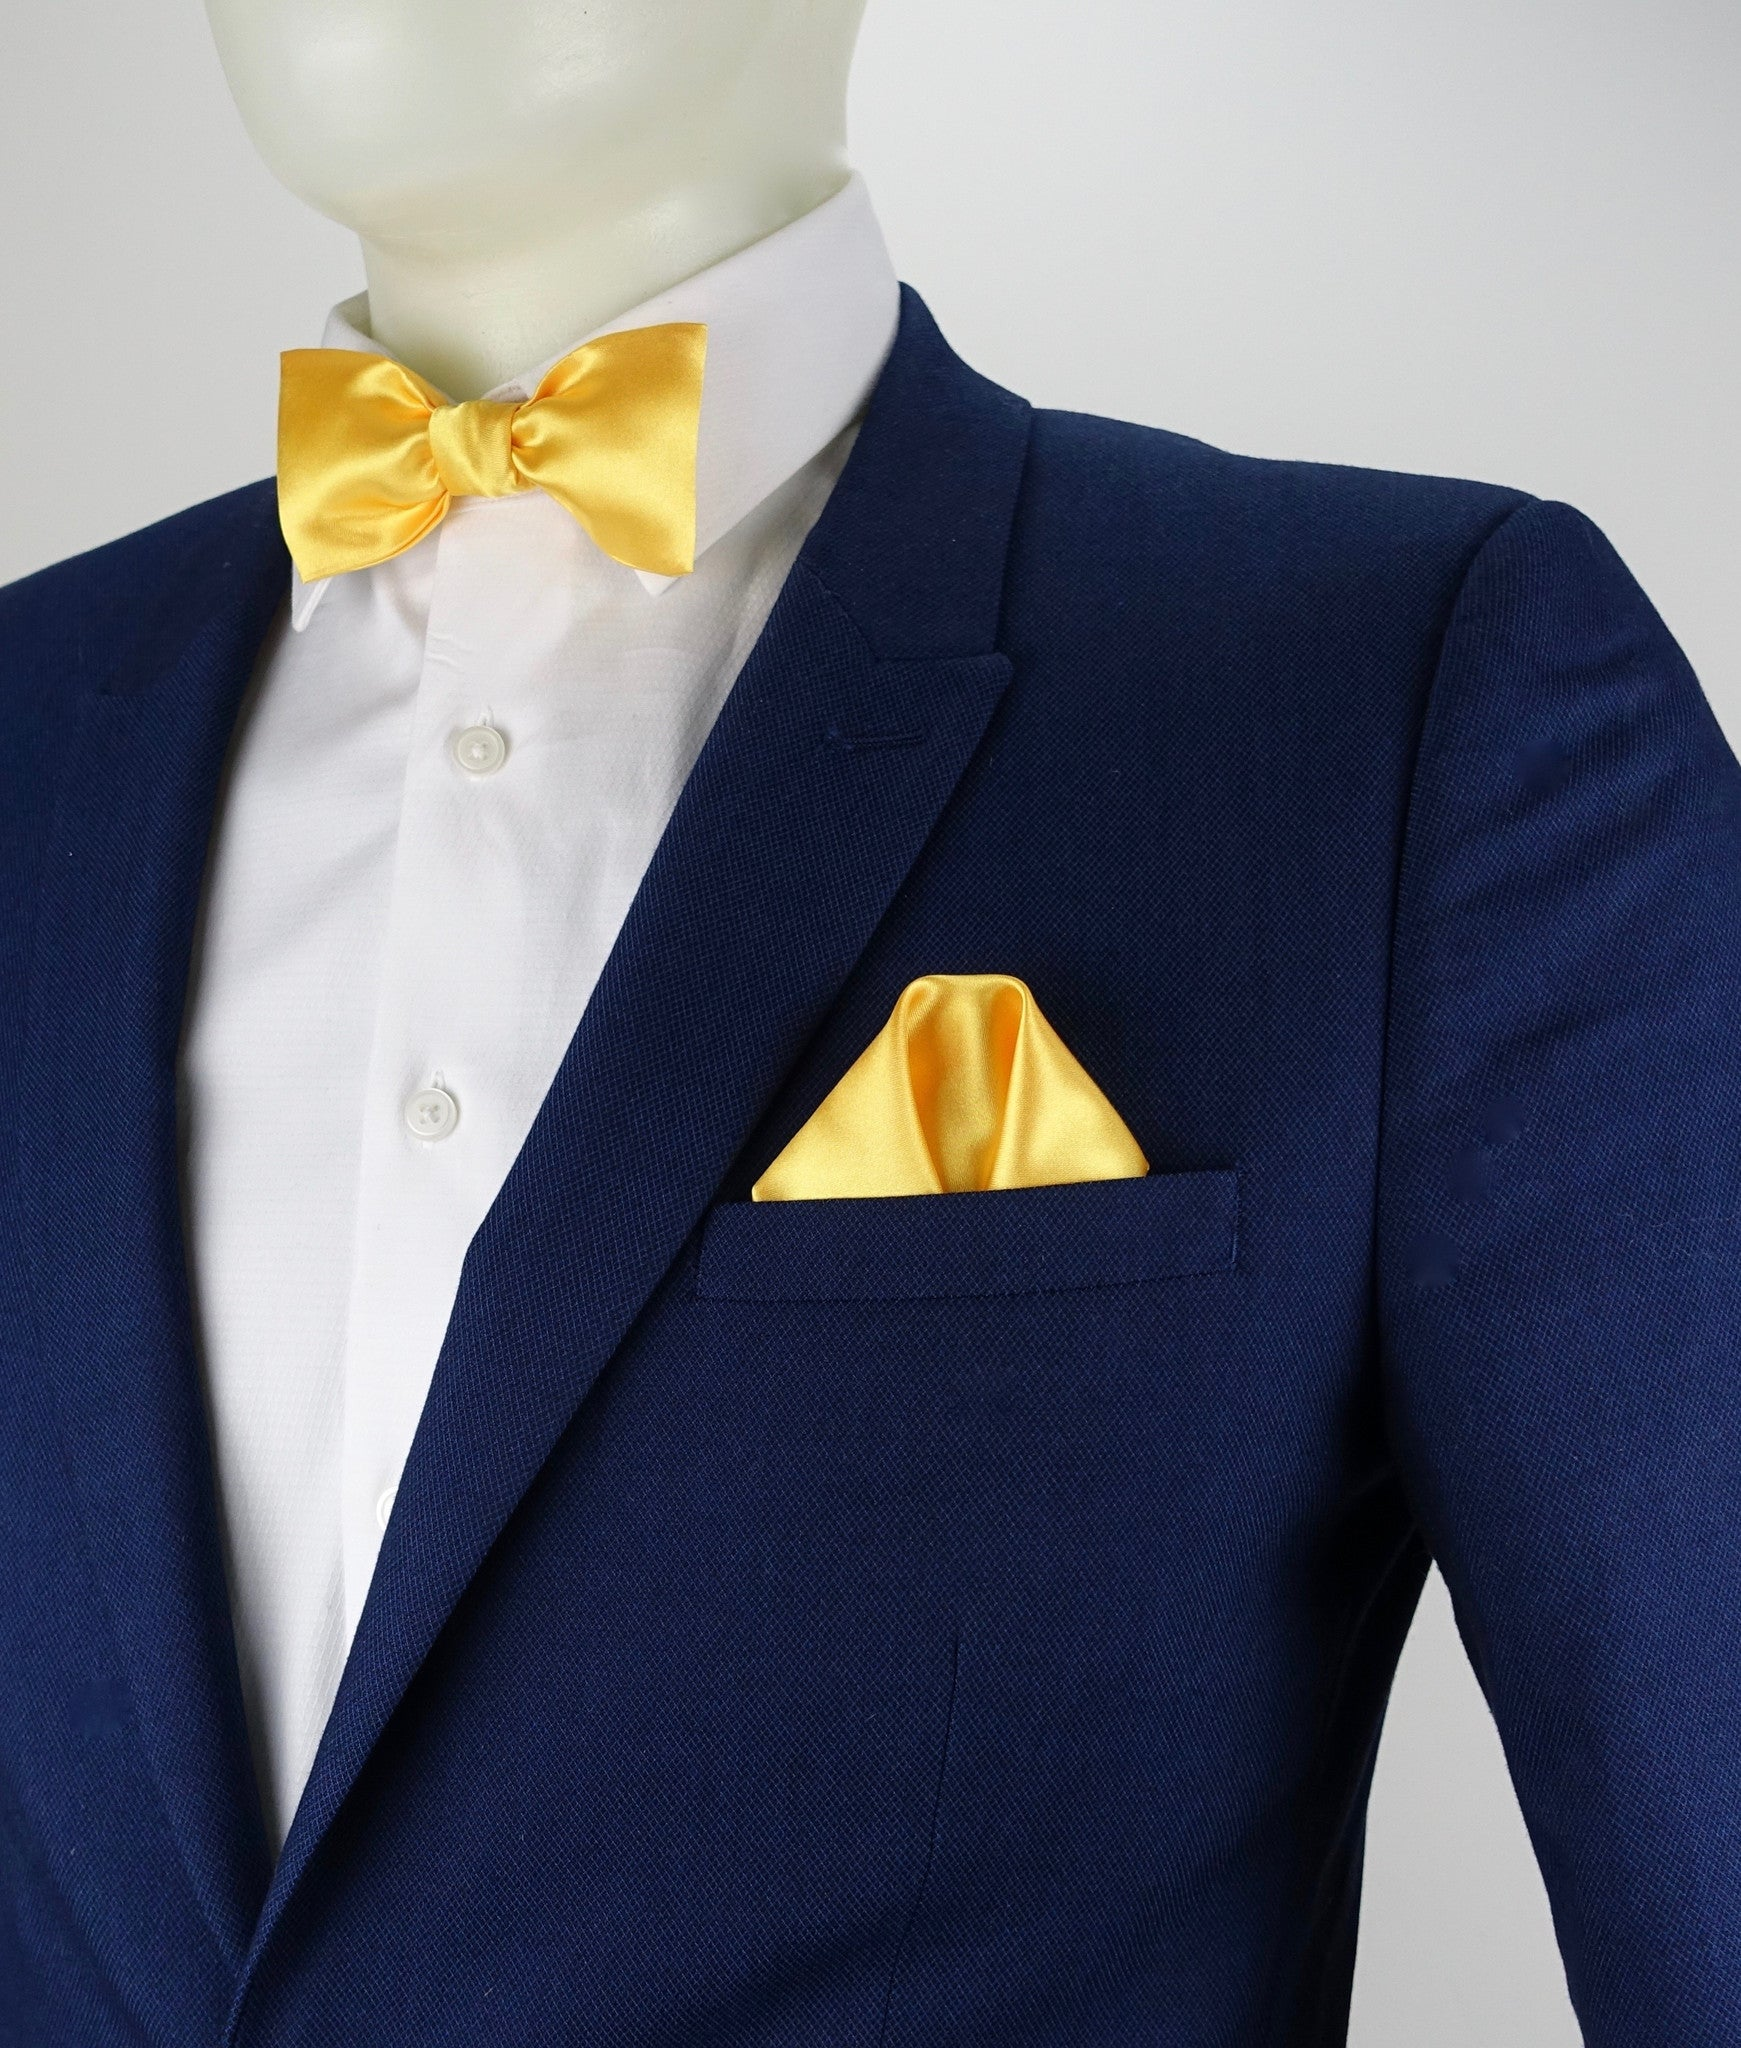 8765641a179fb Glow LED Bow Tie and Pocket Square Set - Good to Glow | Buy Online ...